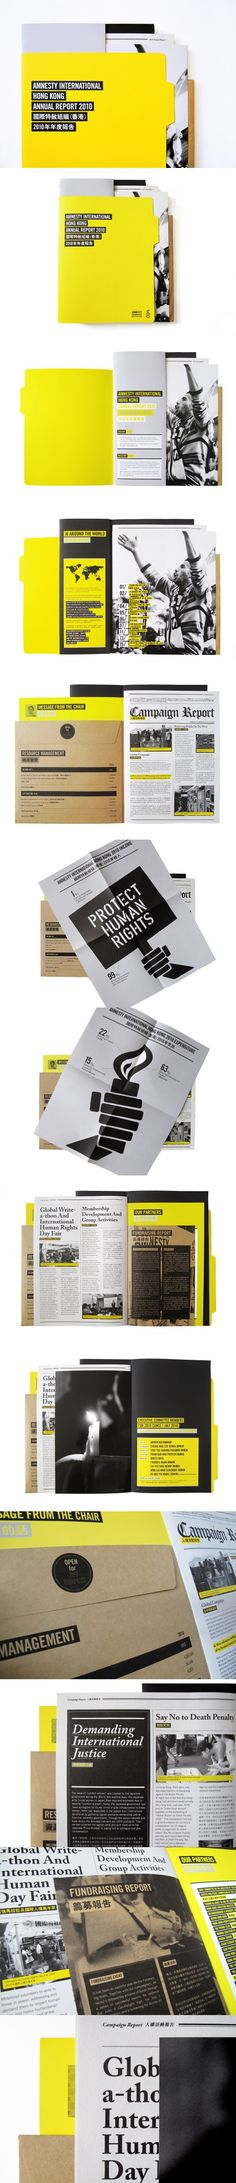 Amnesty International Hong Kong Annual Report 2010    via  http://www.behance.net/gallery/Amnesty-International-Hong-Kong-Annual-Report-2010/1954261